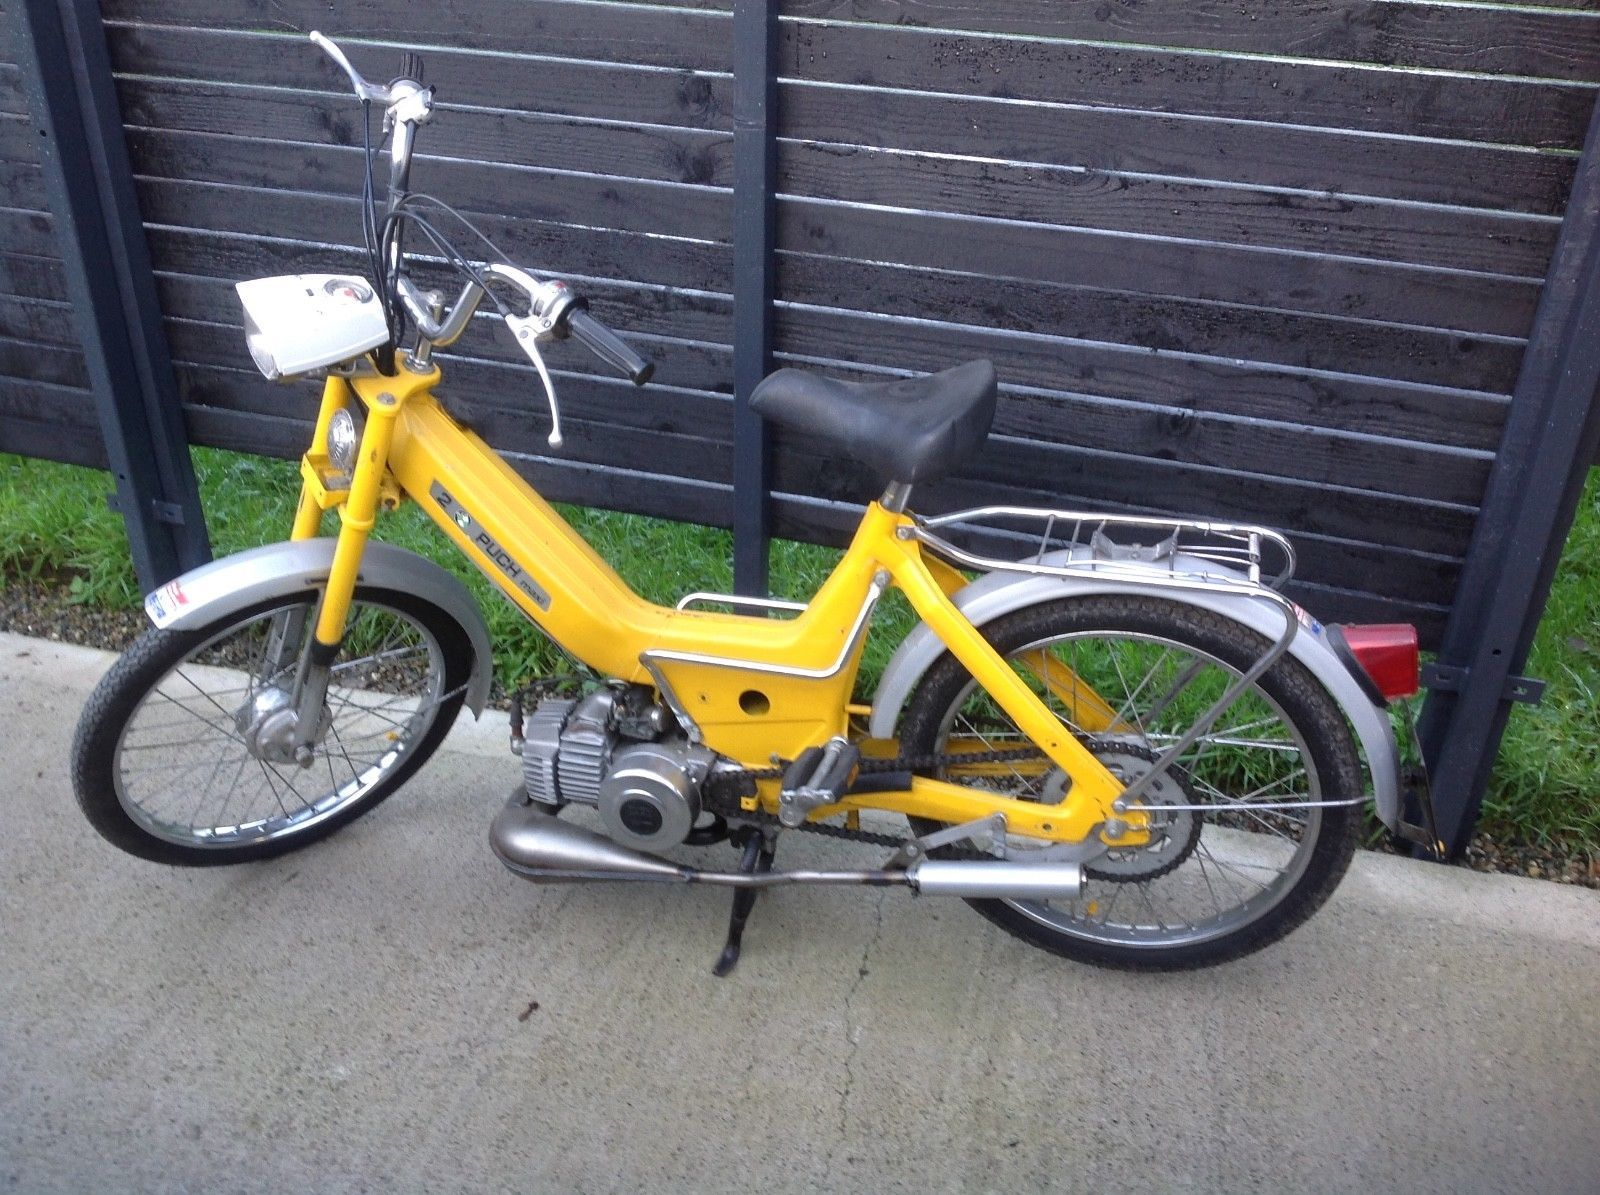 eBay: PUCH MAXI, PUCH MAXI 2 SPEED, COLLECTORS, BARN FIND